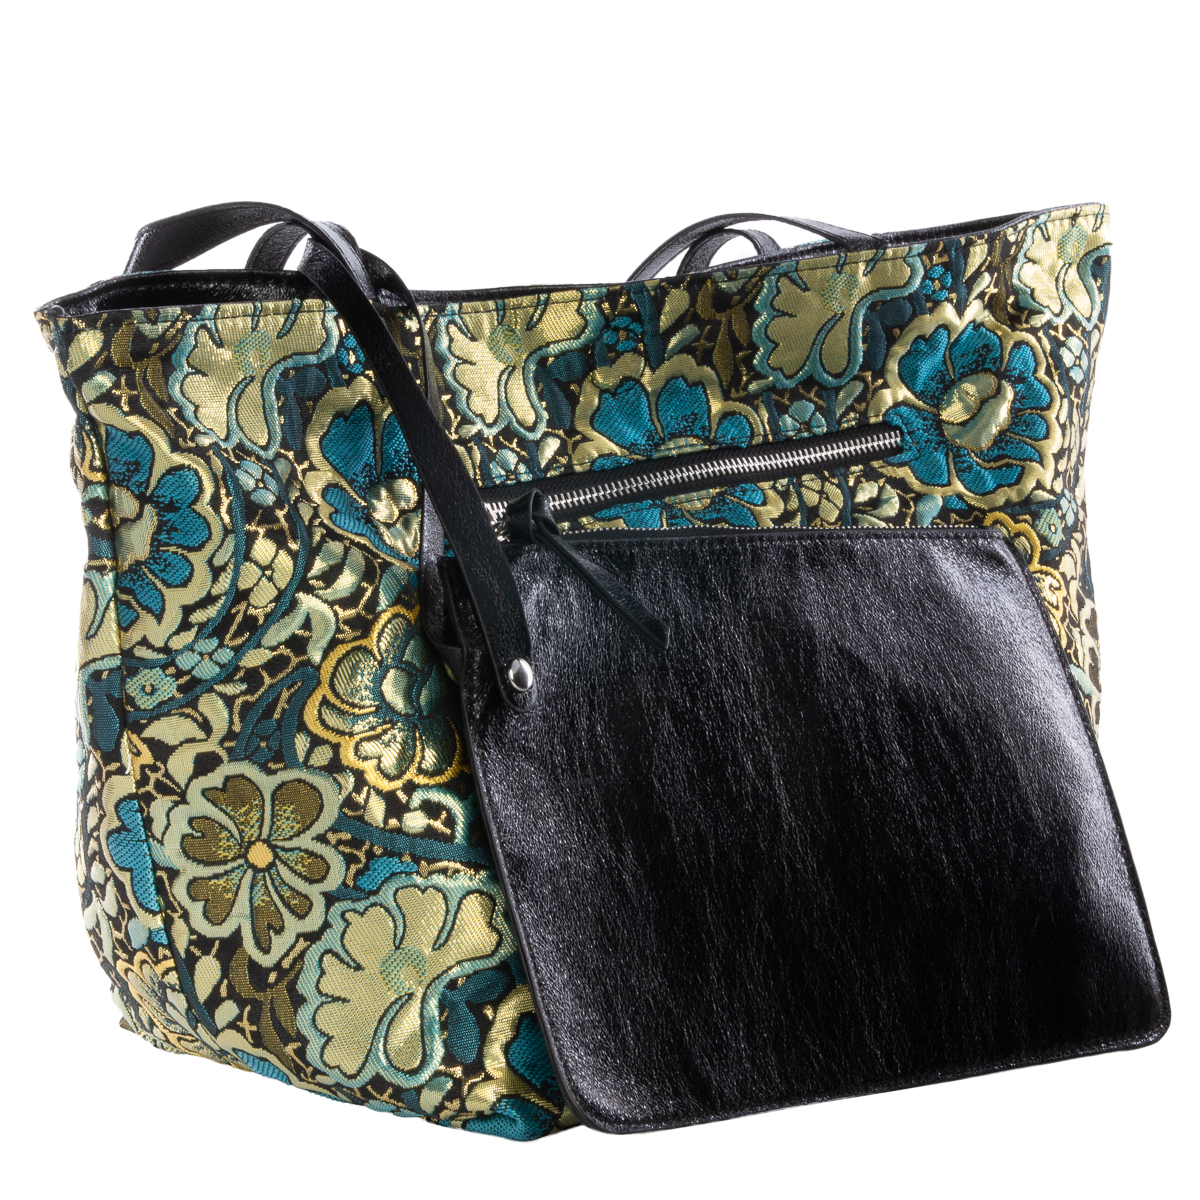 Steve-Madden-Handbags-For-Women-Tote-Bag-Reversible-with-Zip-Clutch-Purse thumbnail 10